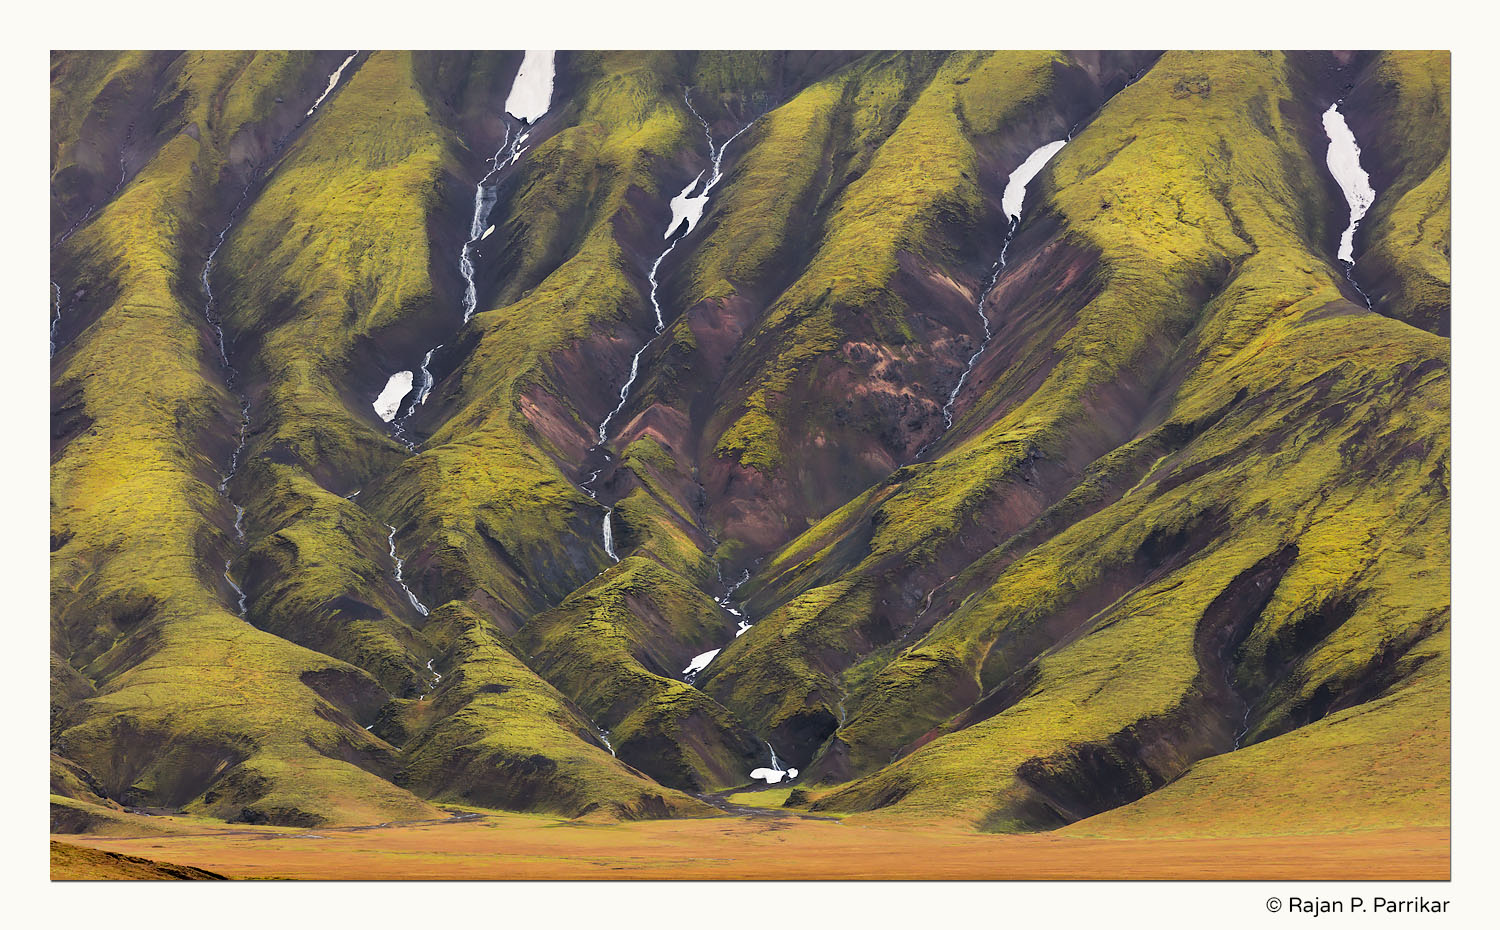 Mógilshöfdar, Highlands of Iceland